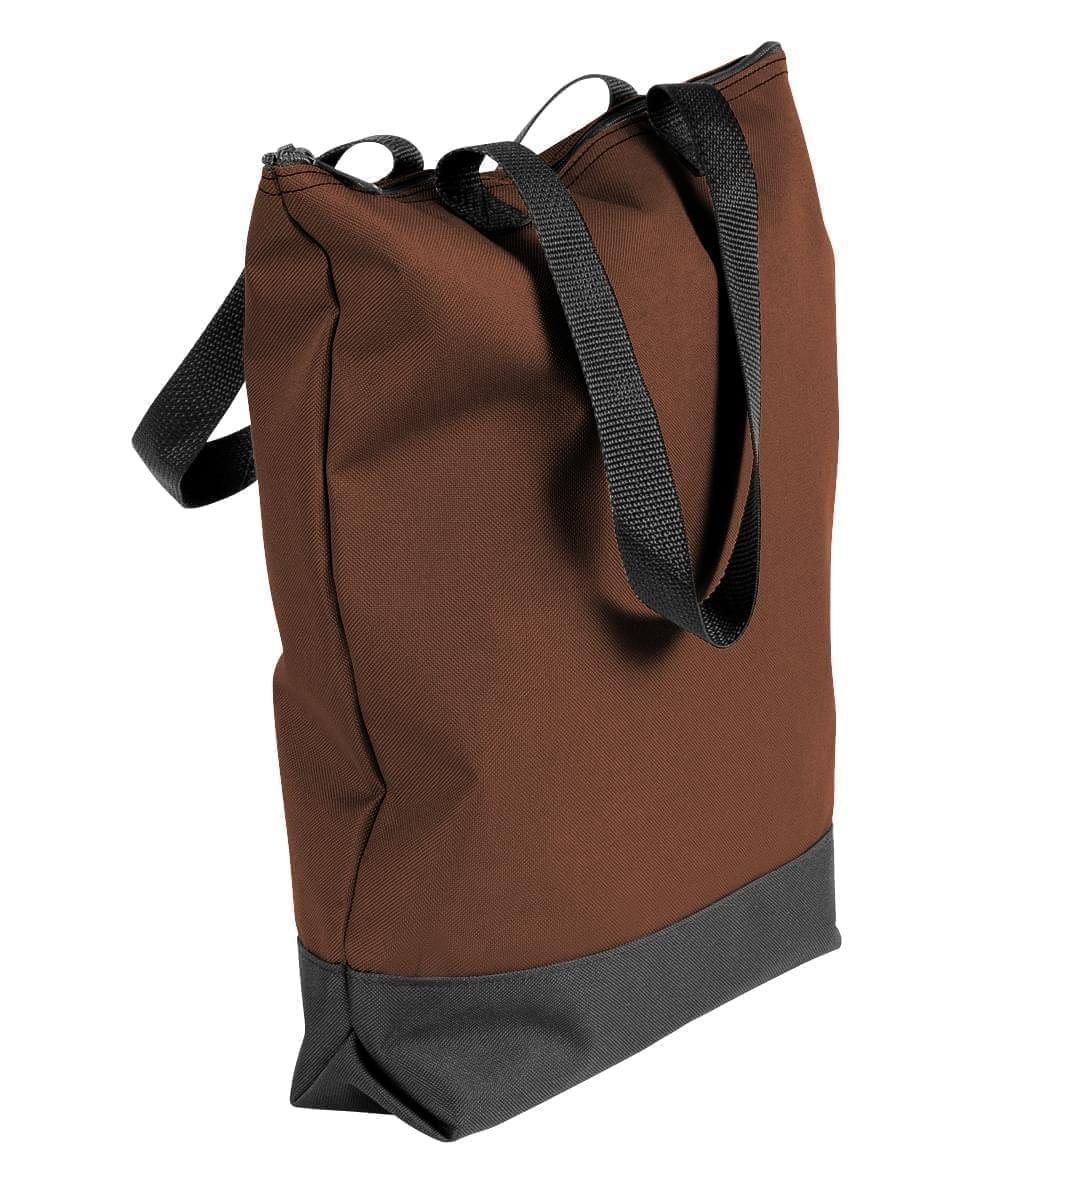 USA Made Poly Notebook Tote Bags, Brown-Black, 1AAMX1UAPR